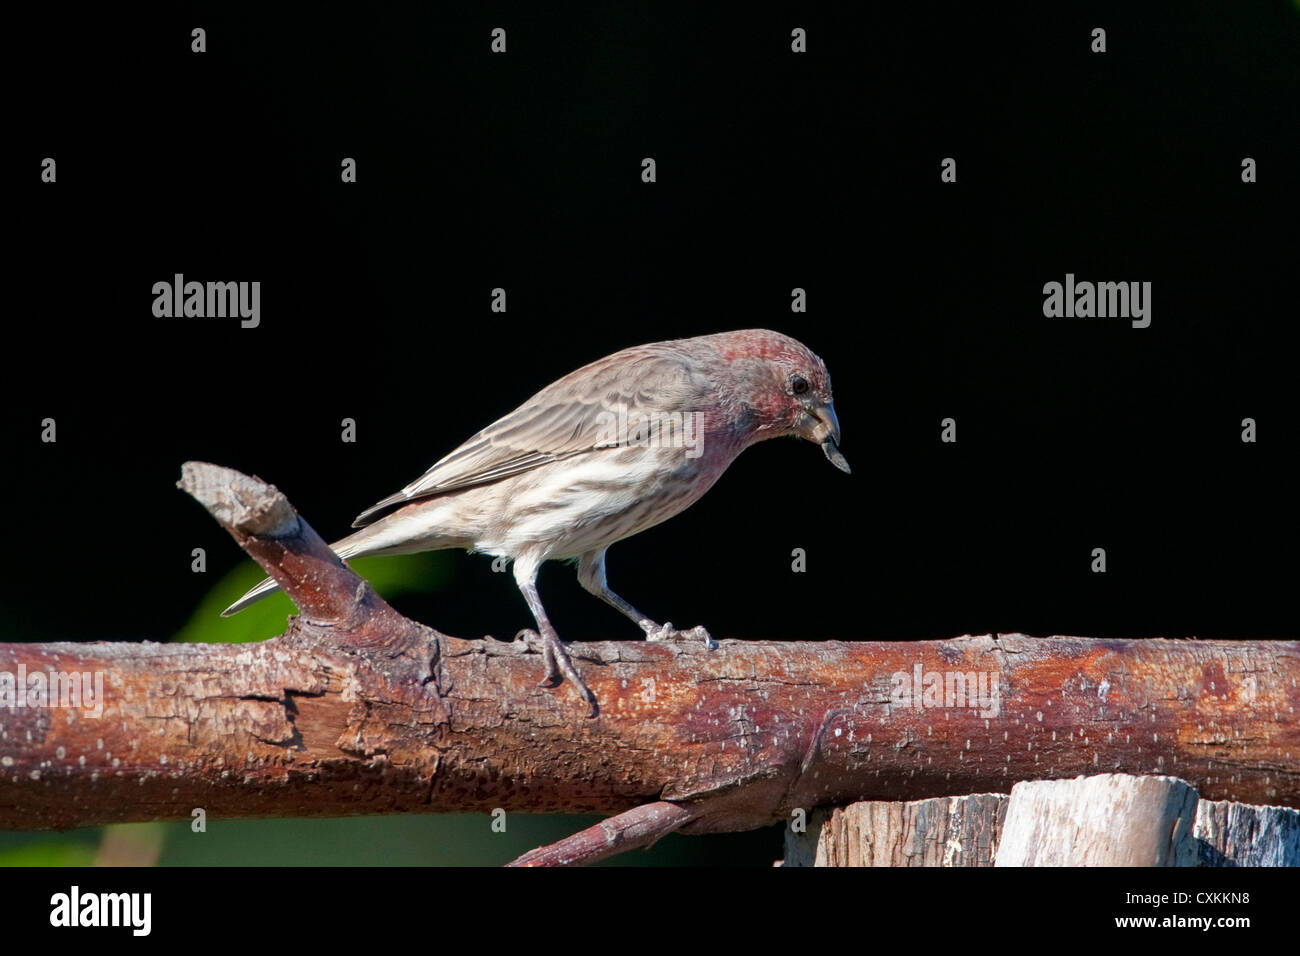 House Finch (Carpodacus mexicanus) male perched on a branch in Nanaimo, Vancouver Island, BC, Canada in October - Stock Image